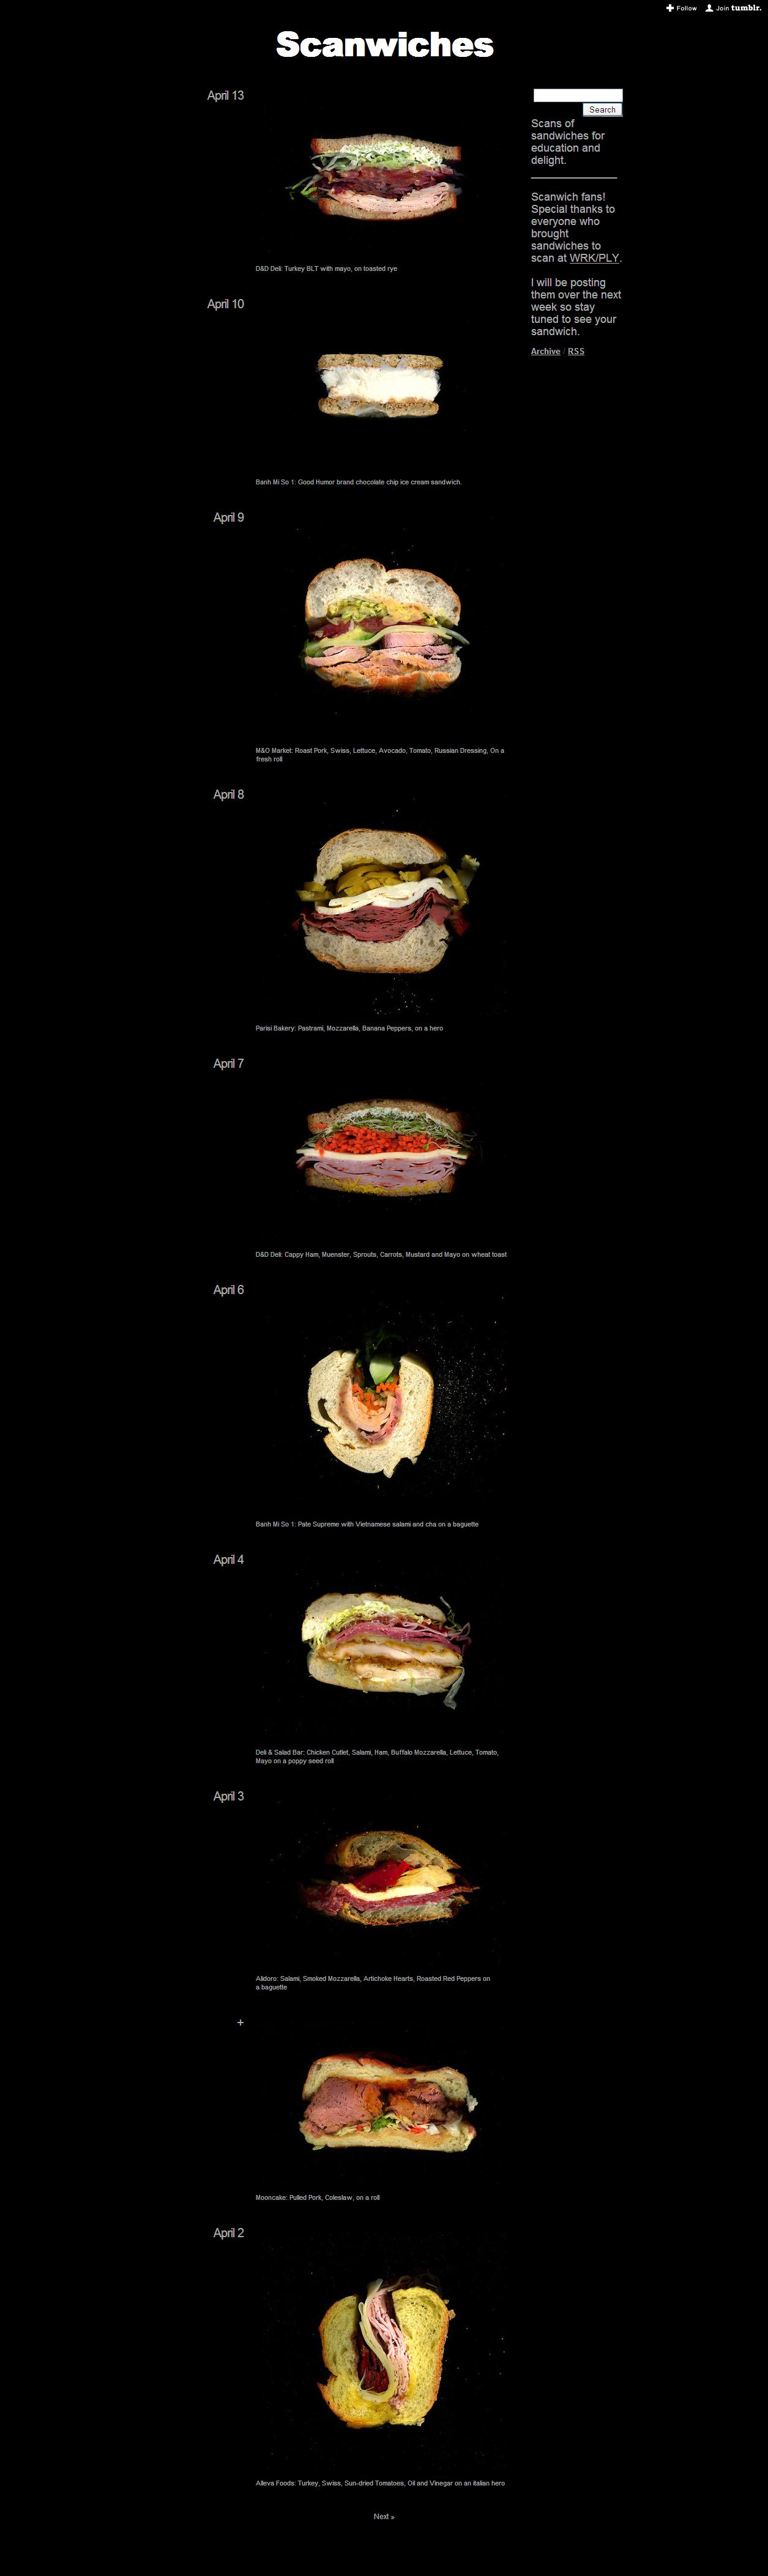 Une belle collection de sandwiches